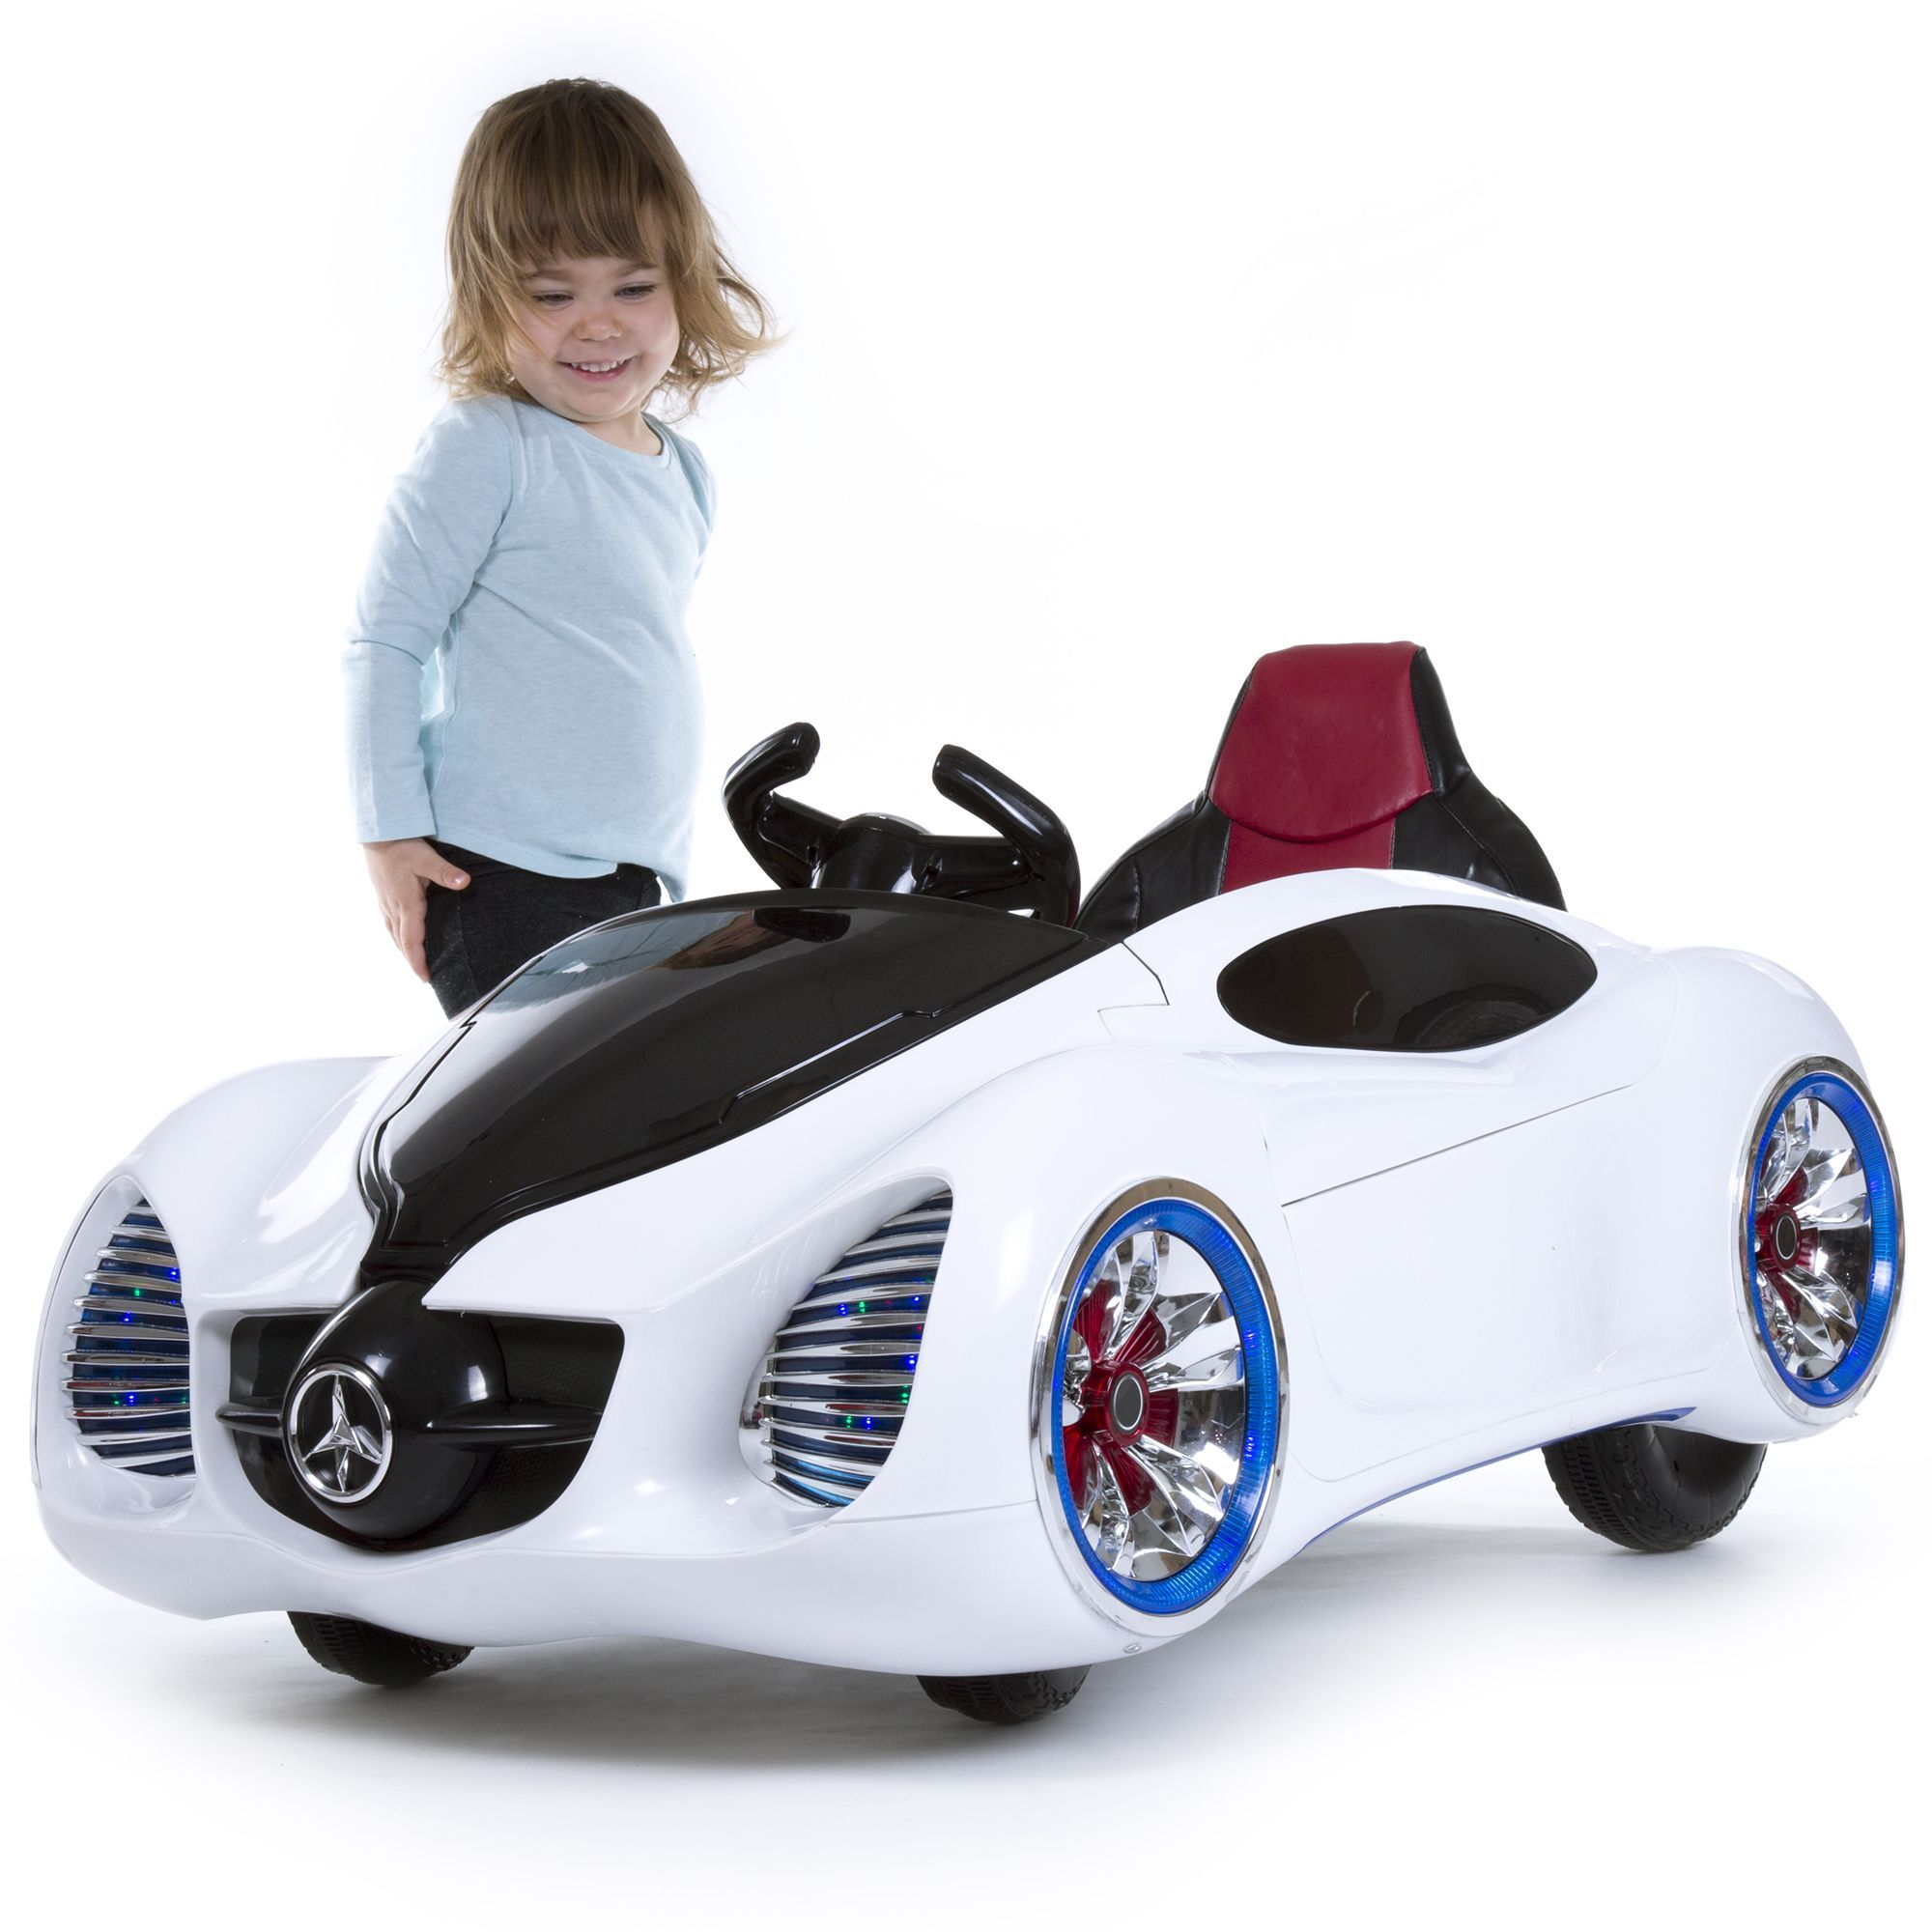 Trademark Lil Rider Pre Embled 12v Battery Operated Sports Car